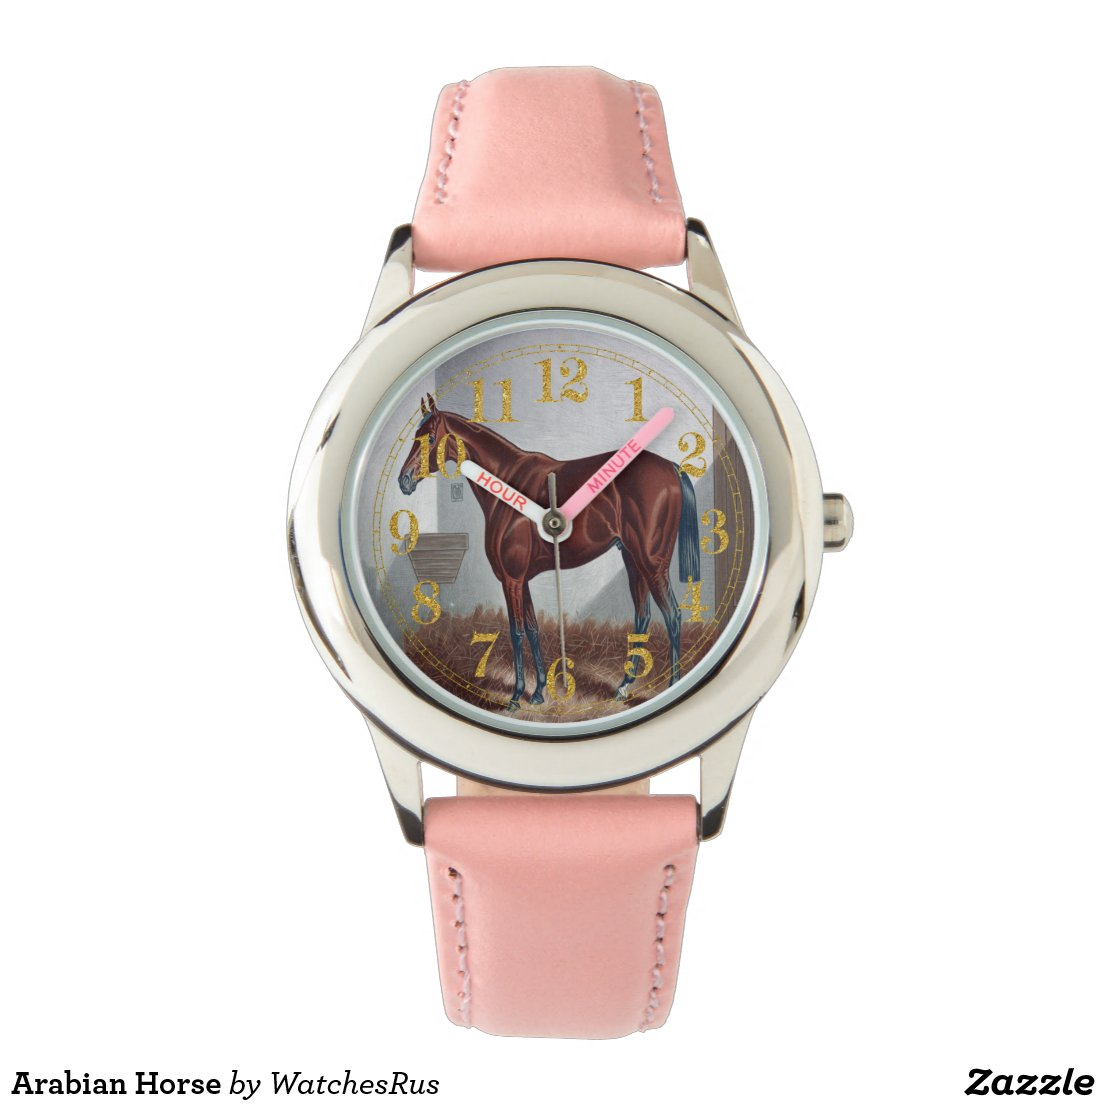 Arabian Horse Watch